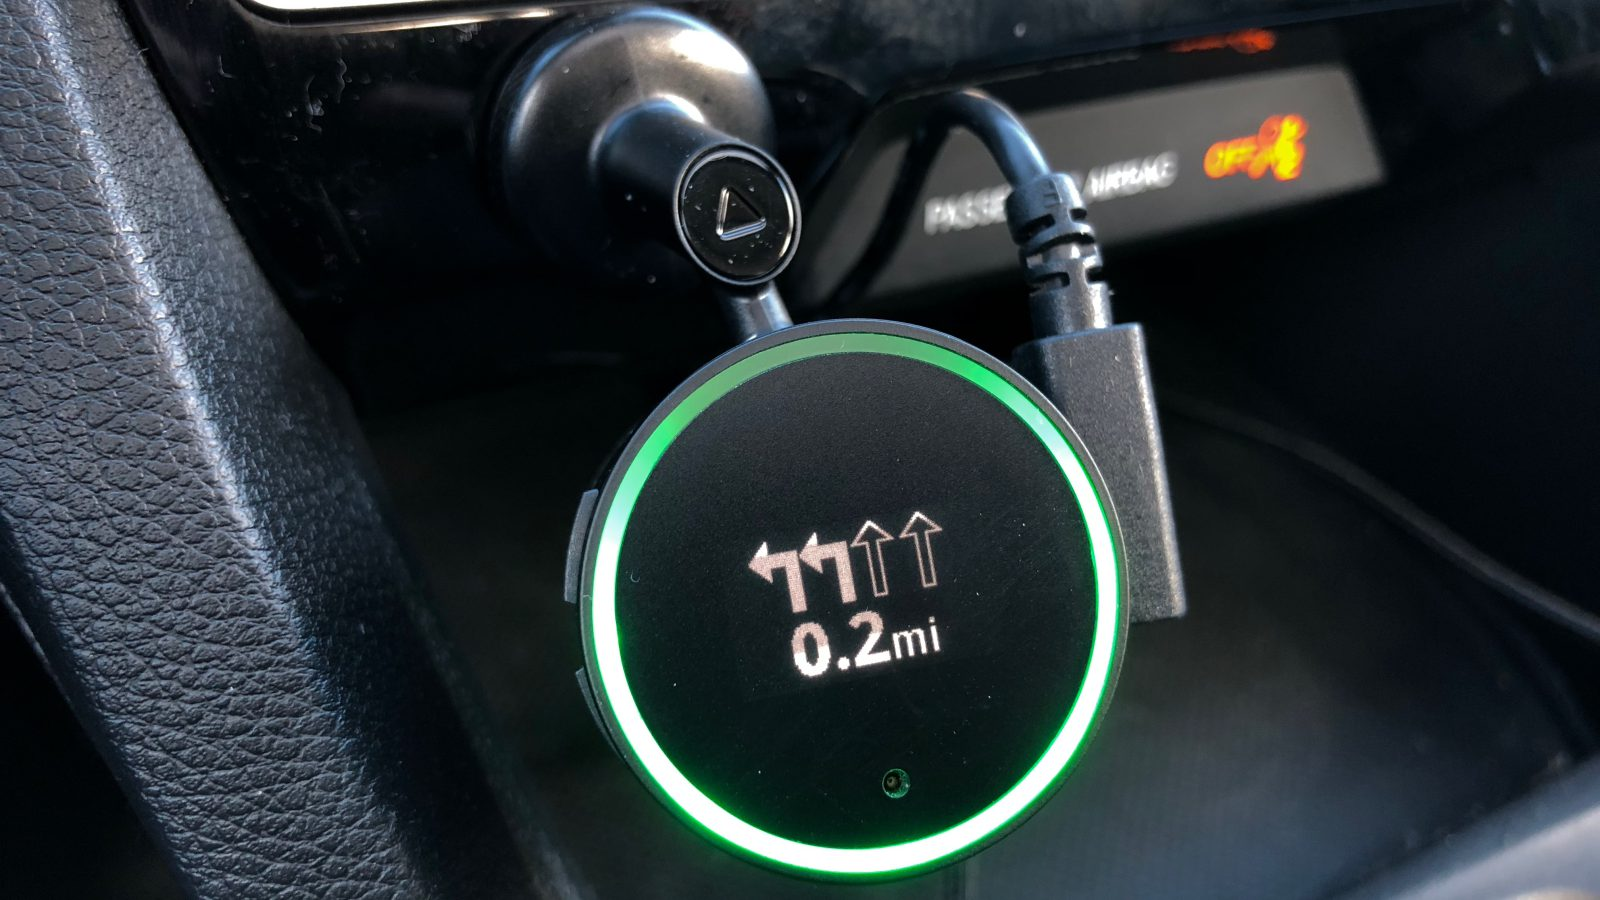 Review: Garmin Speak adds Alexa to the car with navigation cues, but expect limitations review-garmin-speak-adds-alexa-to-the-car-with-navigation-cues-but-expect-limitations